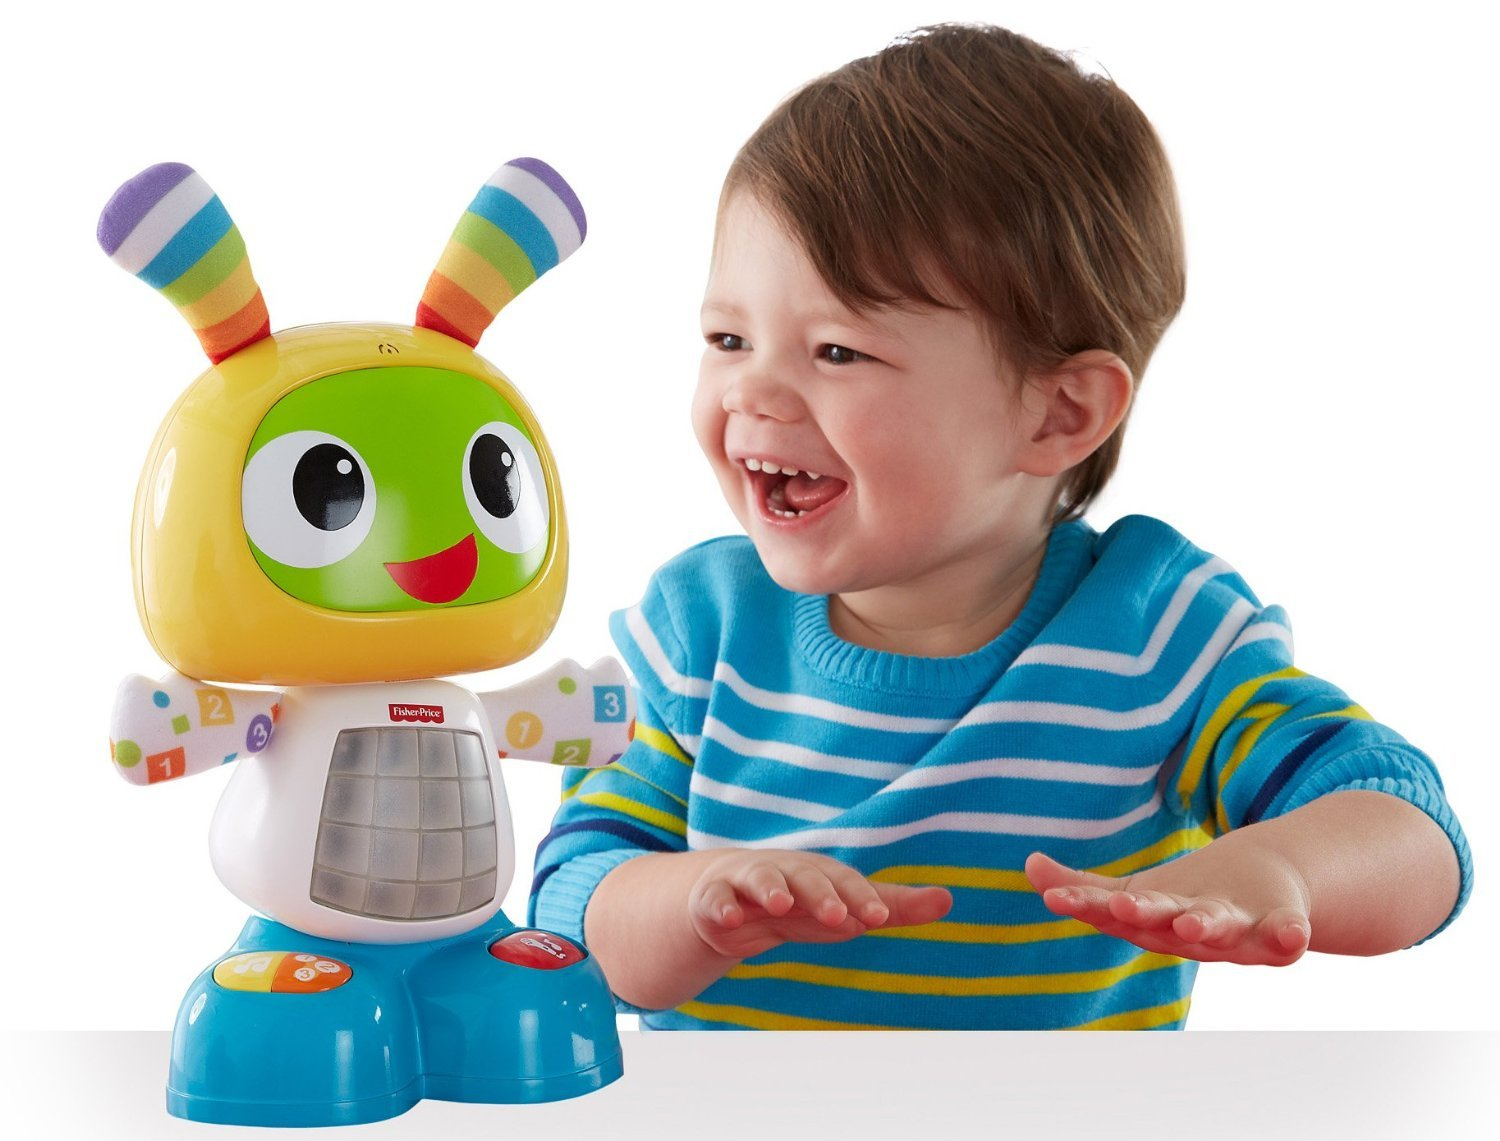 Verwonderend Fisher-Price CGV43 Dance and Move Beatbo, Baby Robot Learning Toy DN-36